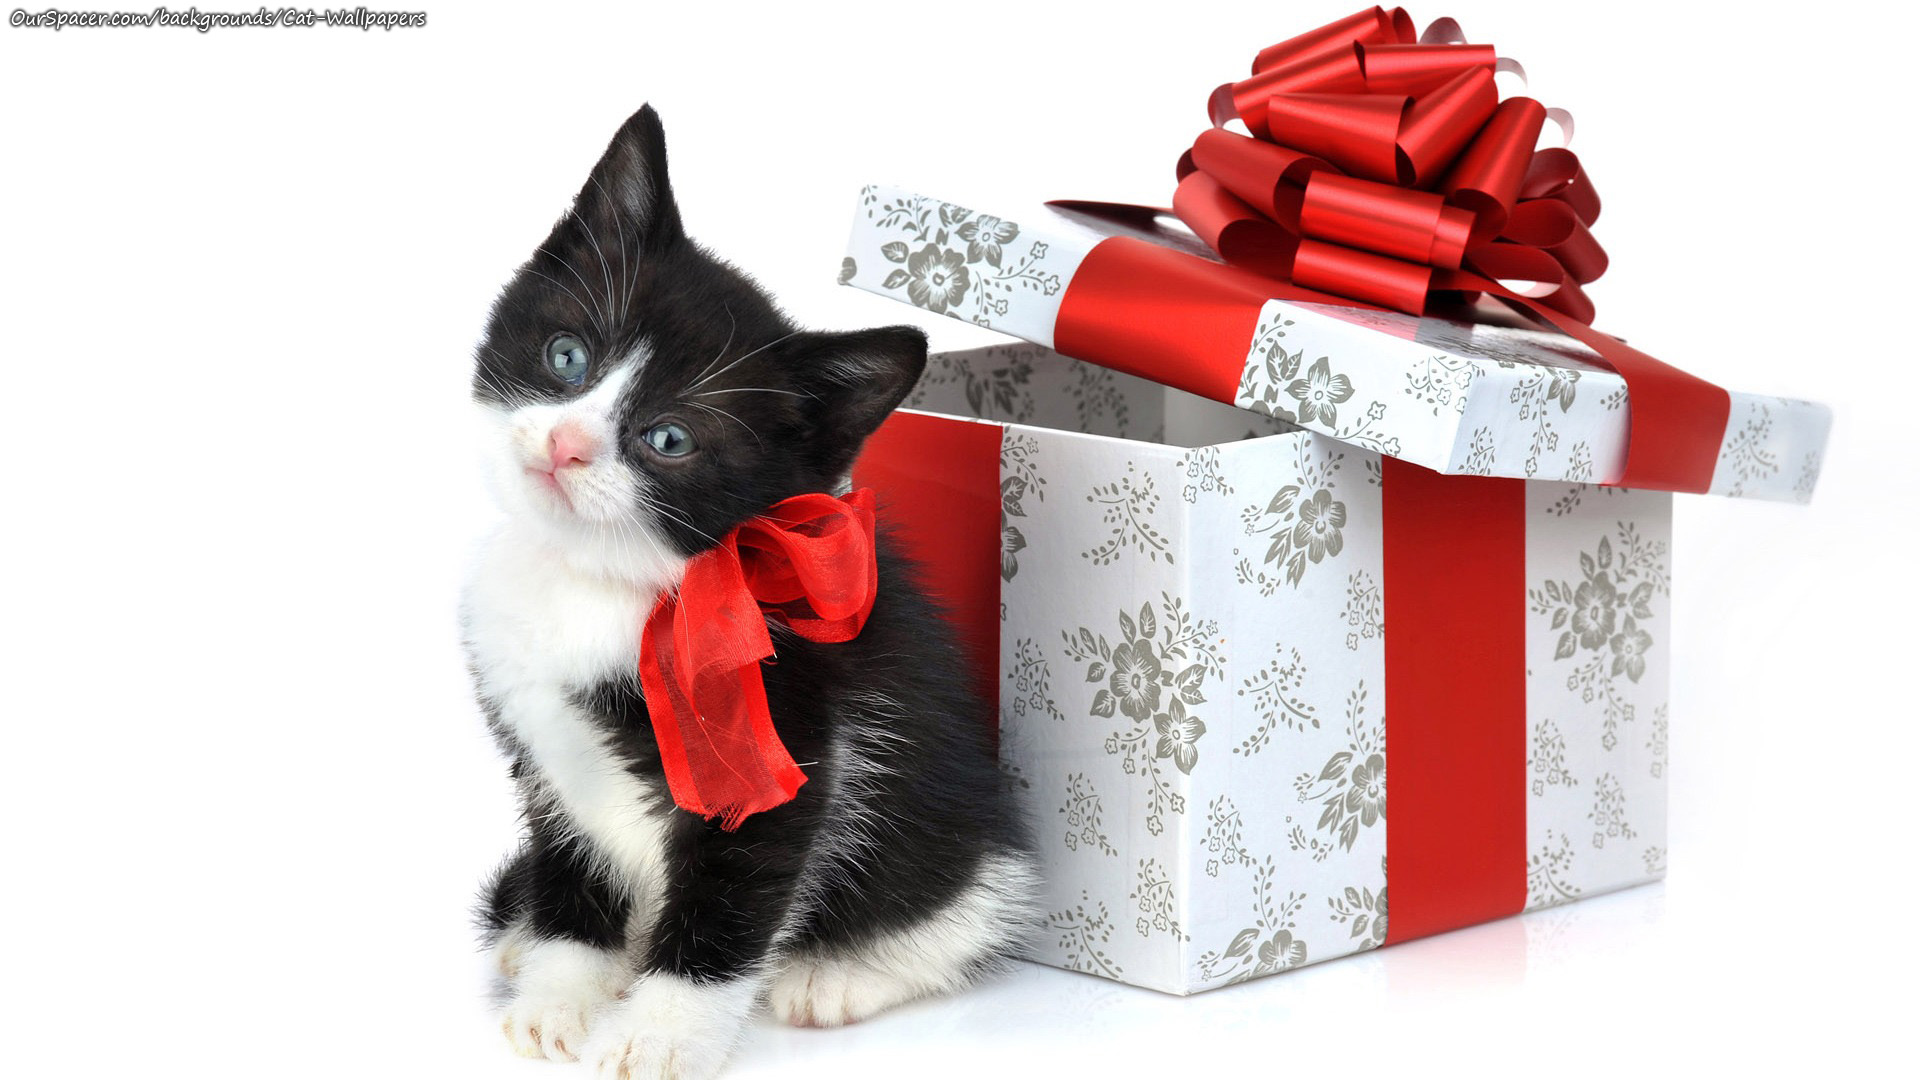 Black kitten with white muzzle and belly wareing a birthday bow wallpapers for myspace, twitter, and hi5 backgrounds